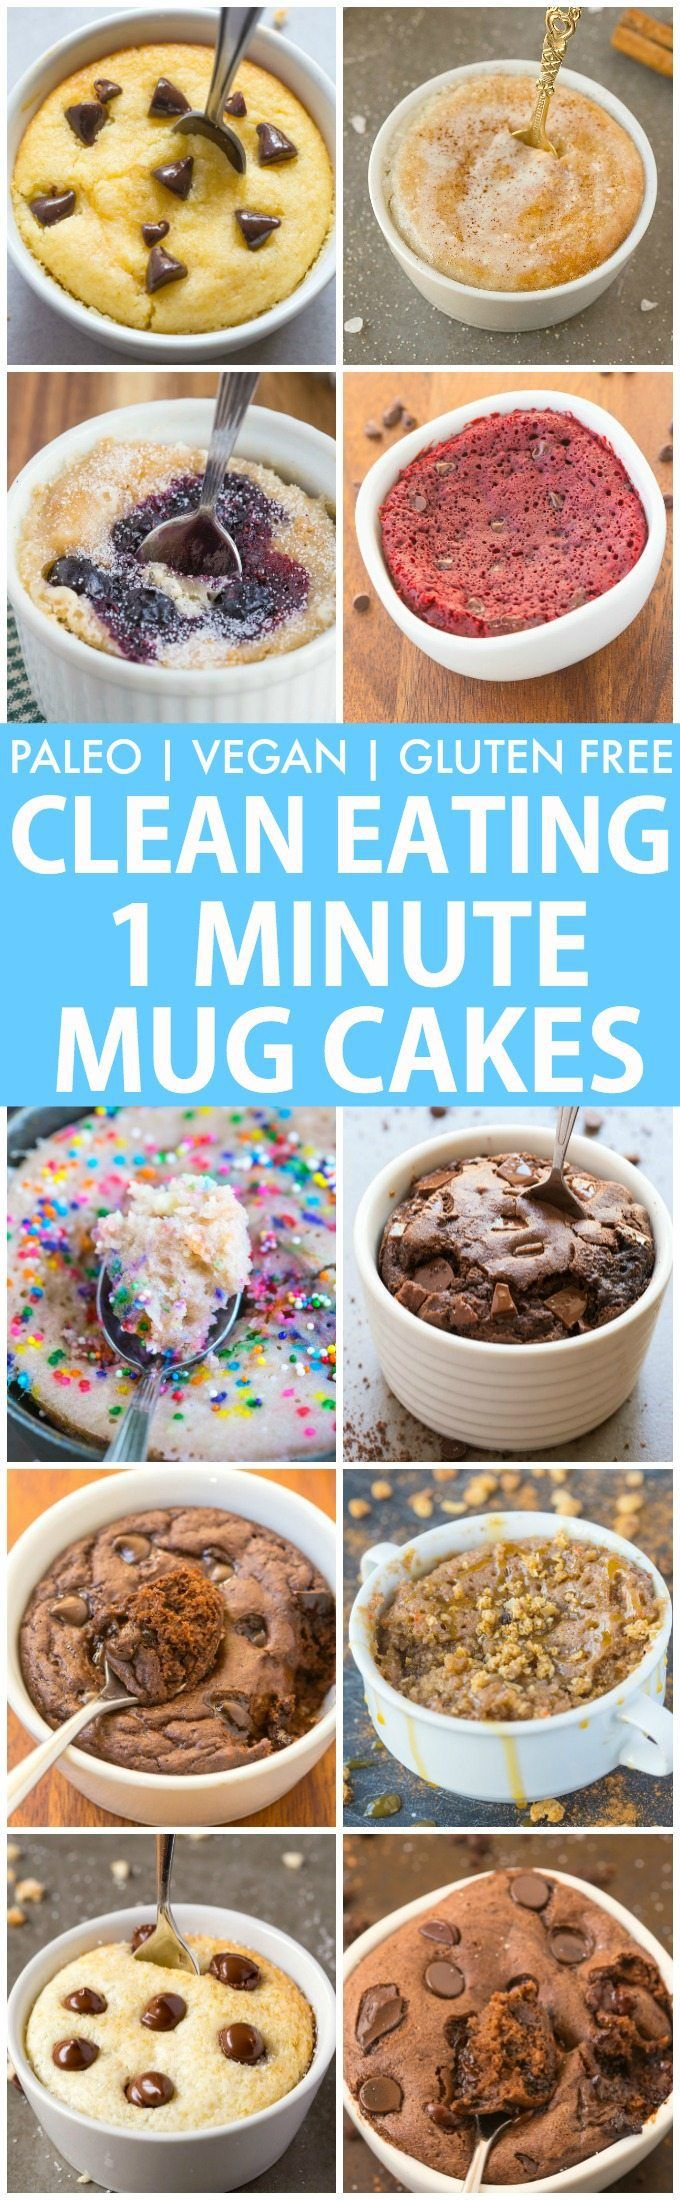 Clean Eating Healthy 1 Minute Mug Cakes, Brownies and Muffins (V, GF, Paleo)- Delicious, single-serve desserts and snacks which take less than a minute! Low carb, sugar free and more with OVEN options too! {vegan, gluten free, paleo recipe}- thebigmansworld.com